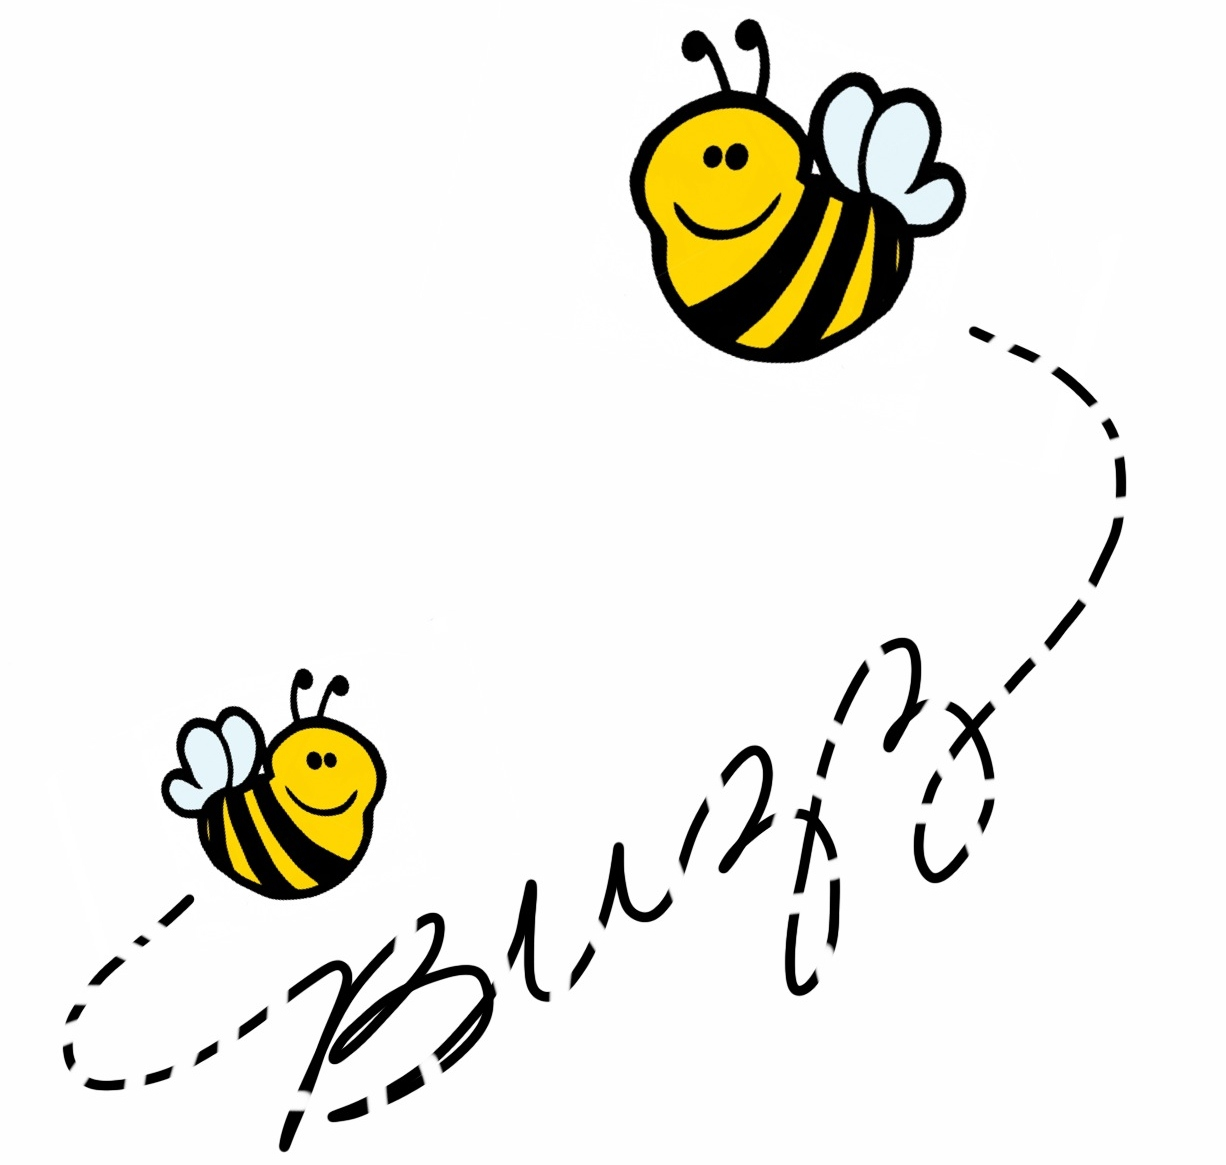 Buzzing Clipart on Adventure Camp Cliparts